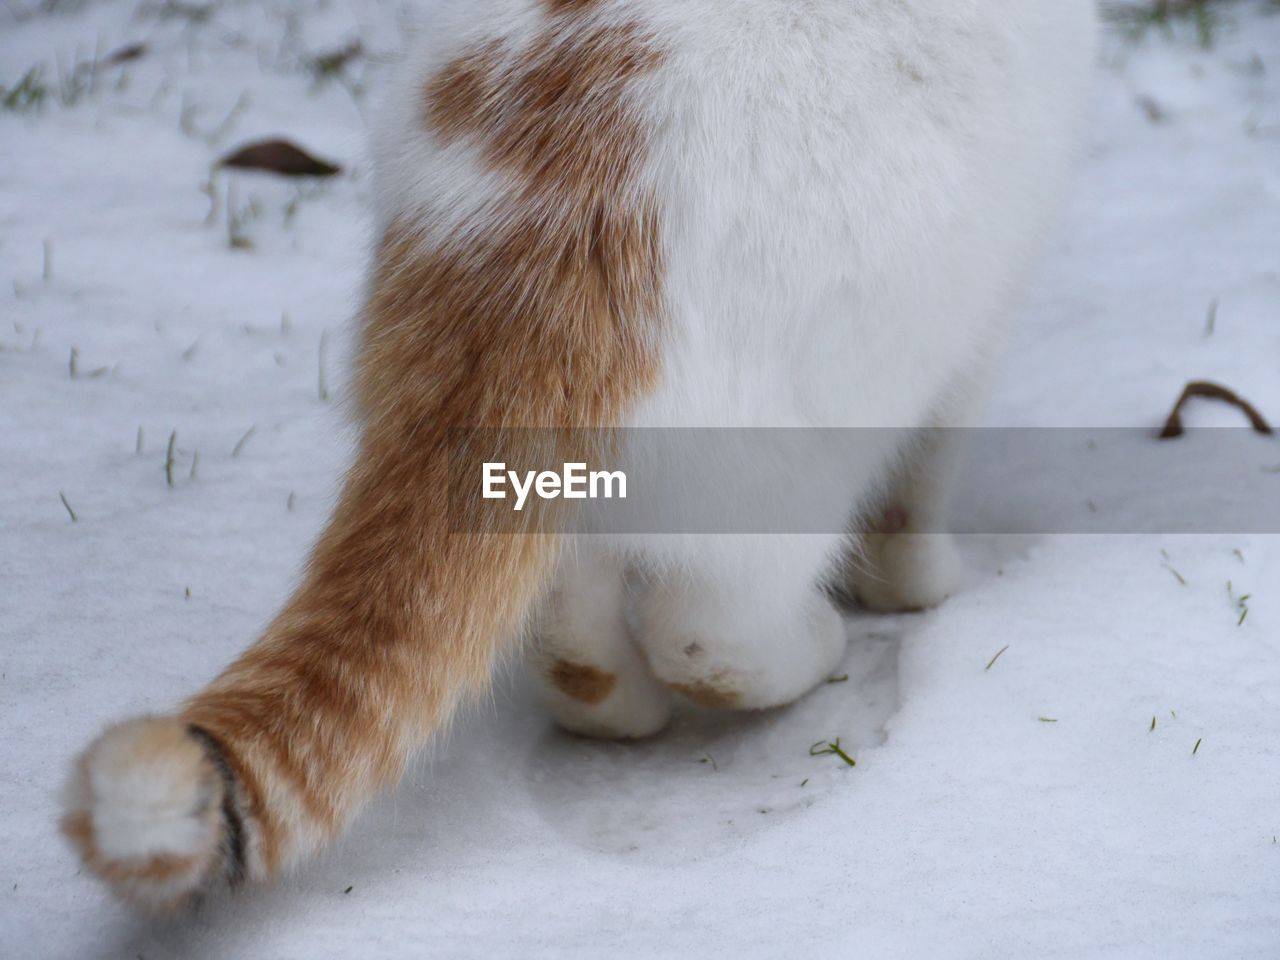 Cropped image of cat on snow field